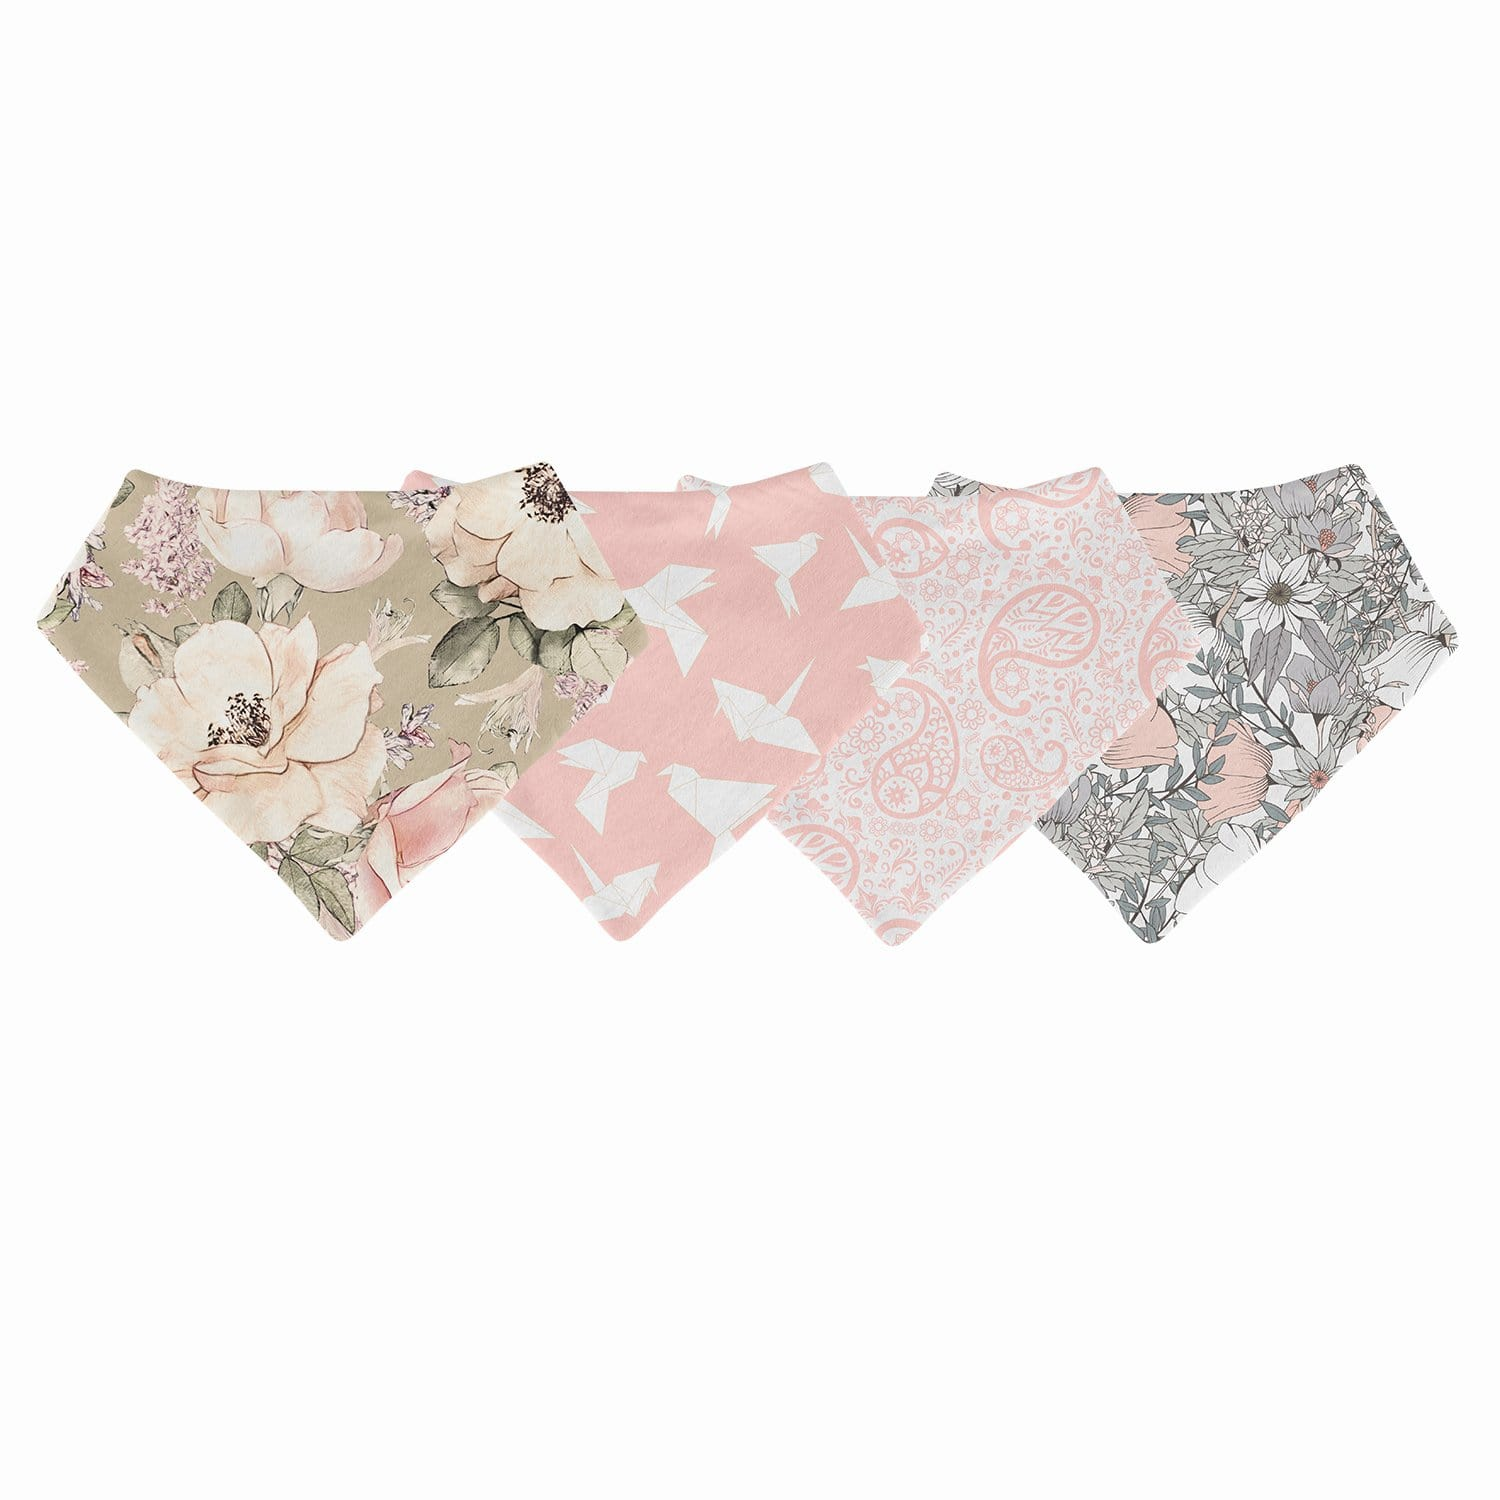 Pretty in Pink 4-Pack Bib Collection